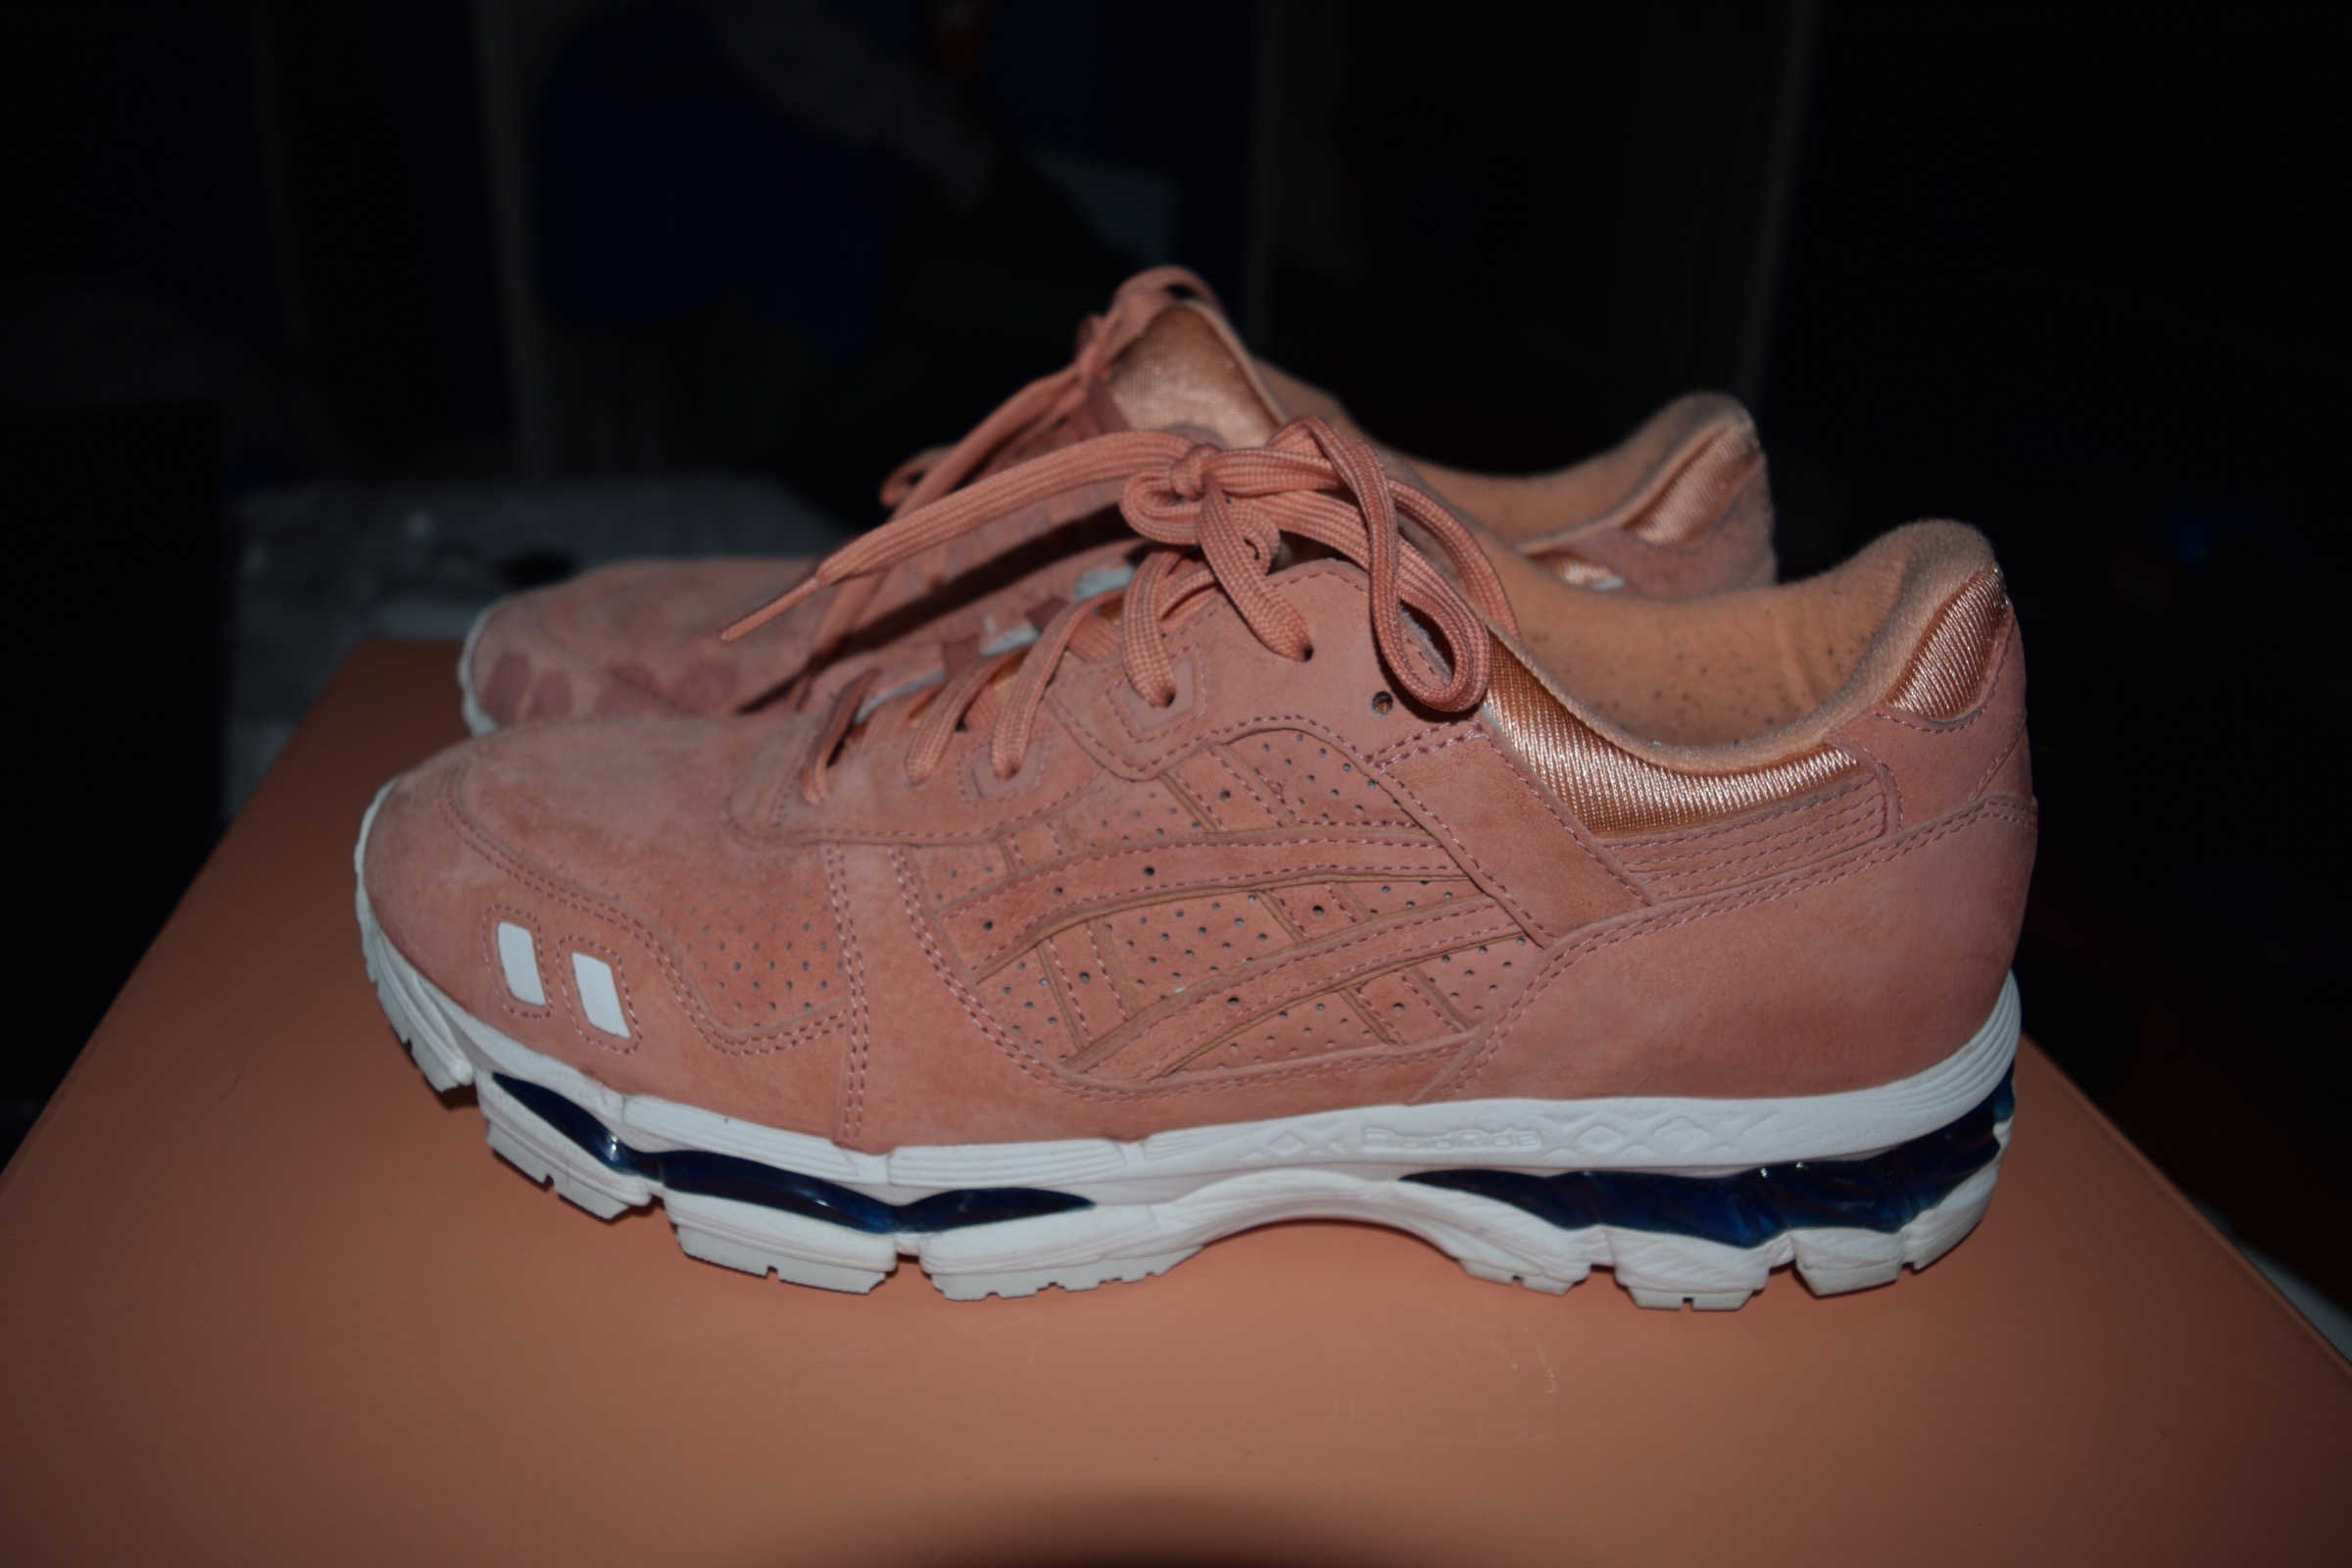 908fcc3bd5e4 Asics Kith X Asics Gel Lyte III.i Salmon Toe Salmon Legends Day Size 11.5  Size 11.5 - Low-Top Sneakers for Sale - Grailed